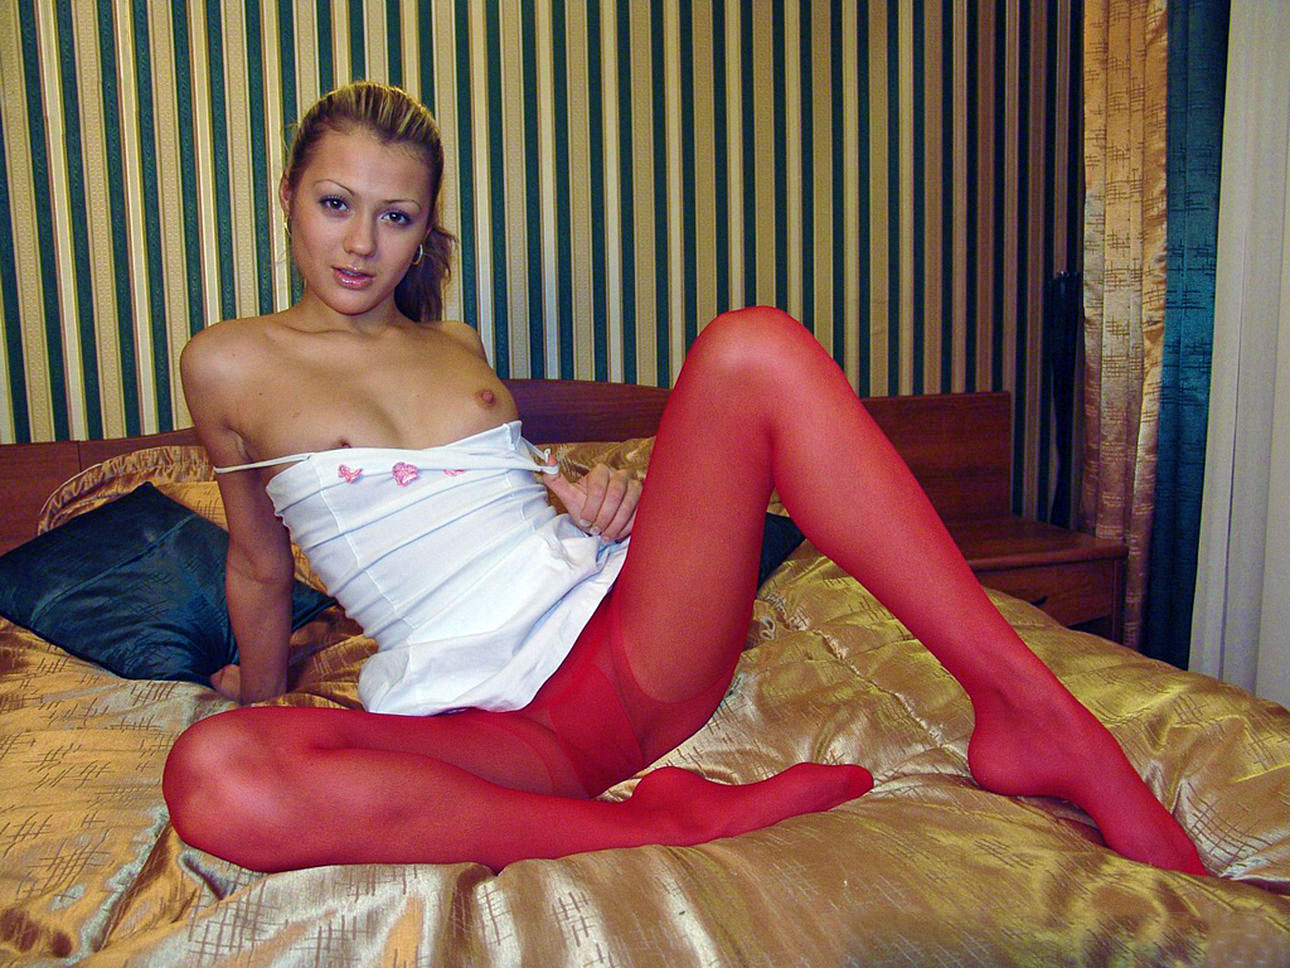 naked-girls-in-tights-pantyhose-mix-vol3-61